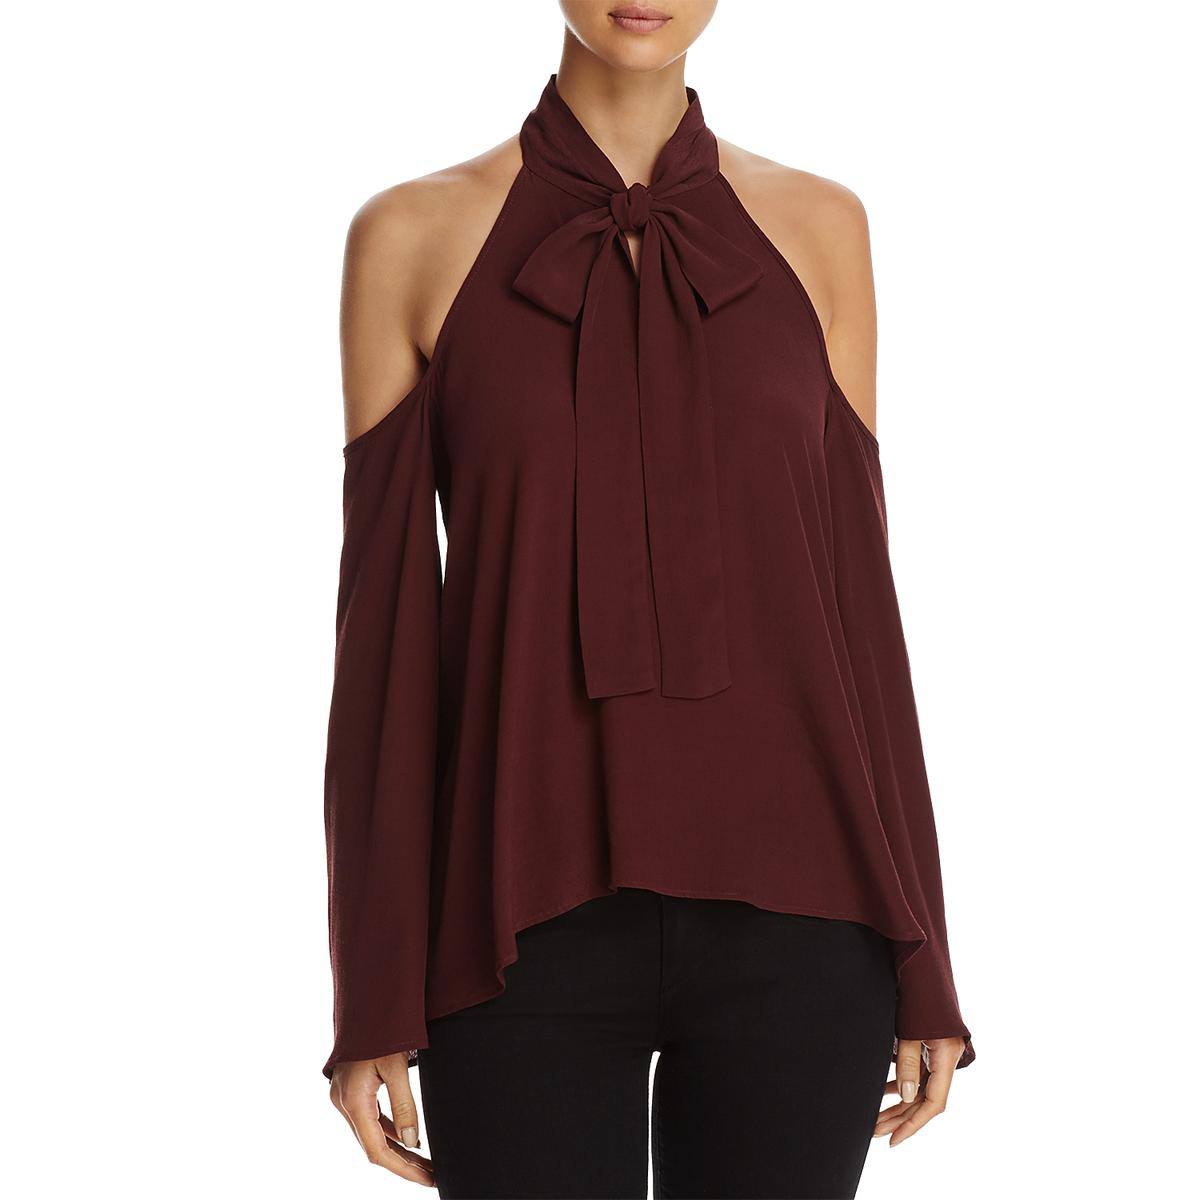 c9747758960382 Elan USA Womens Purple Cold Shoulder High-low Night out Blouse Top M ...